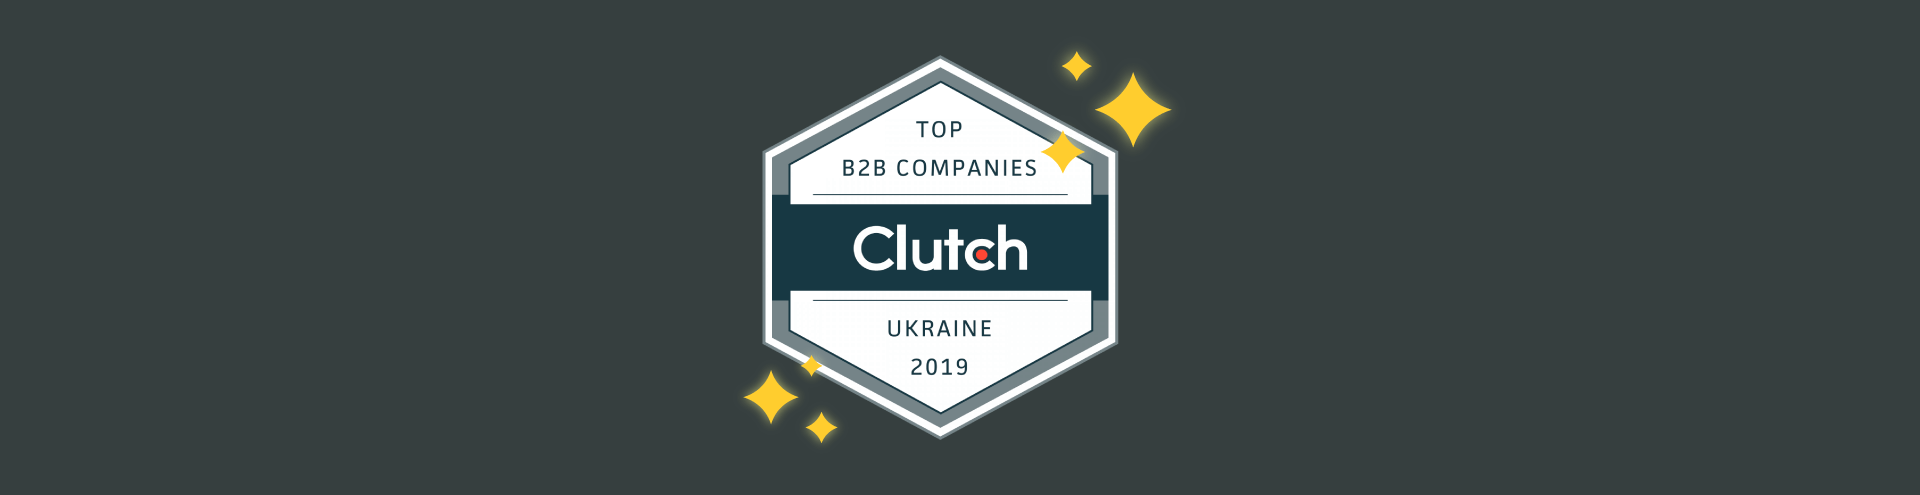 Apiko Recognized as a Top B2B Company by Clutch!